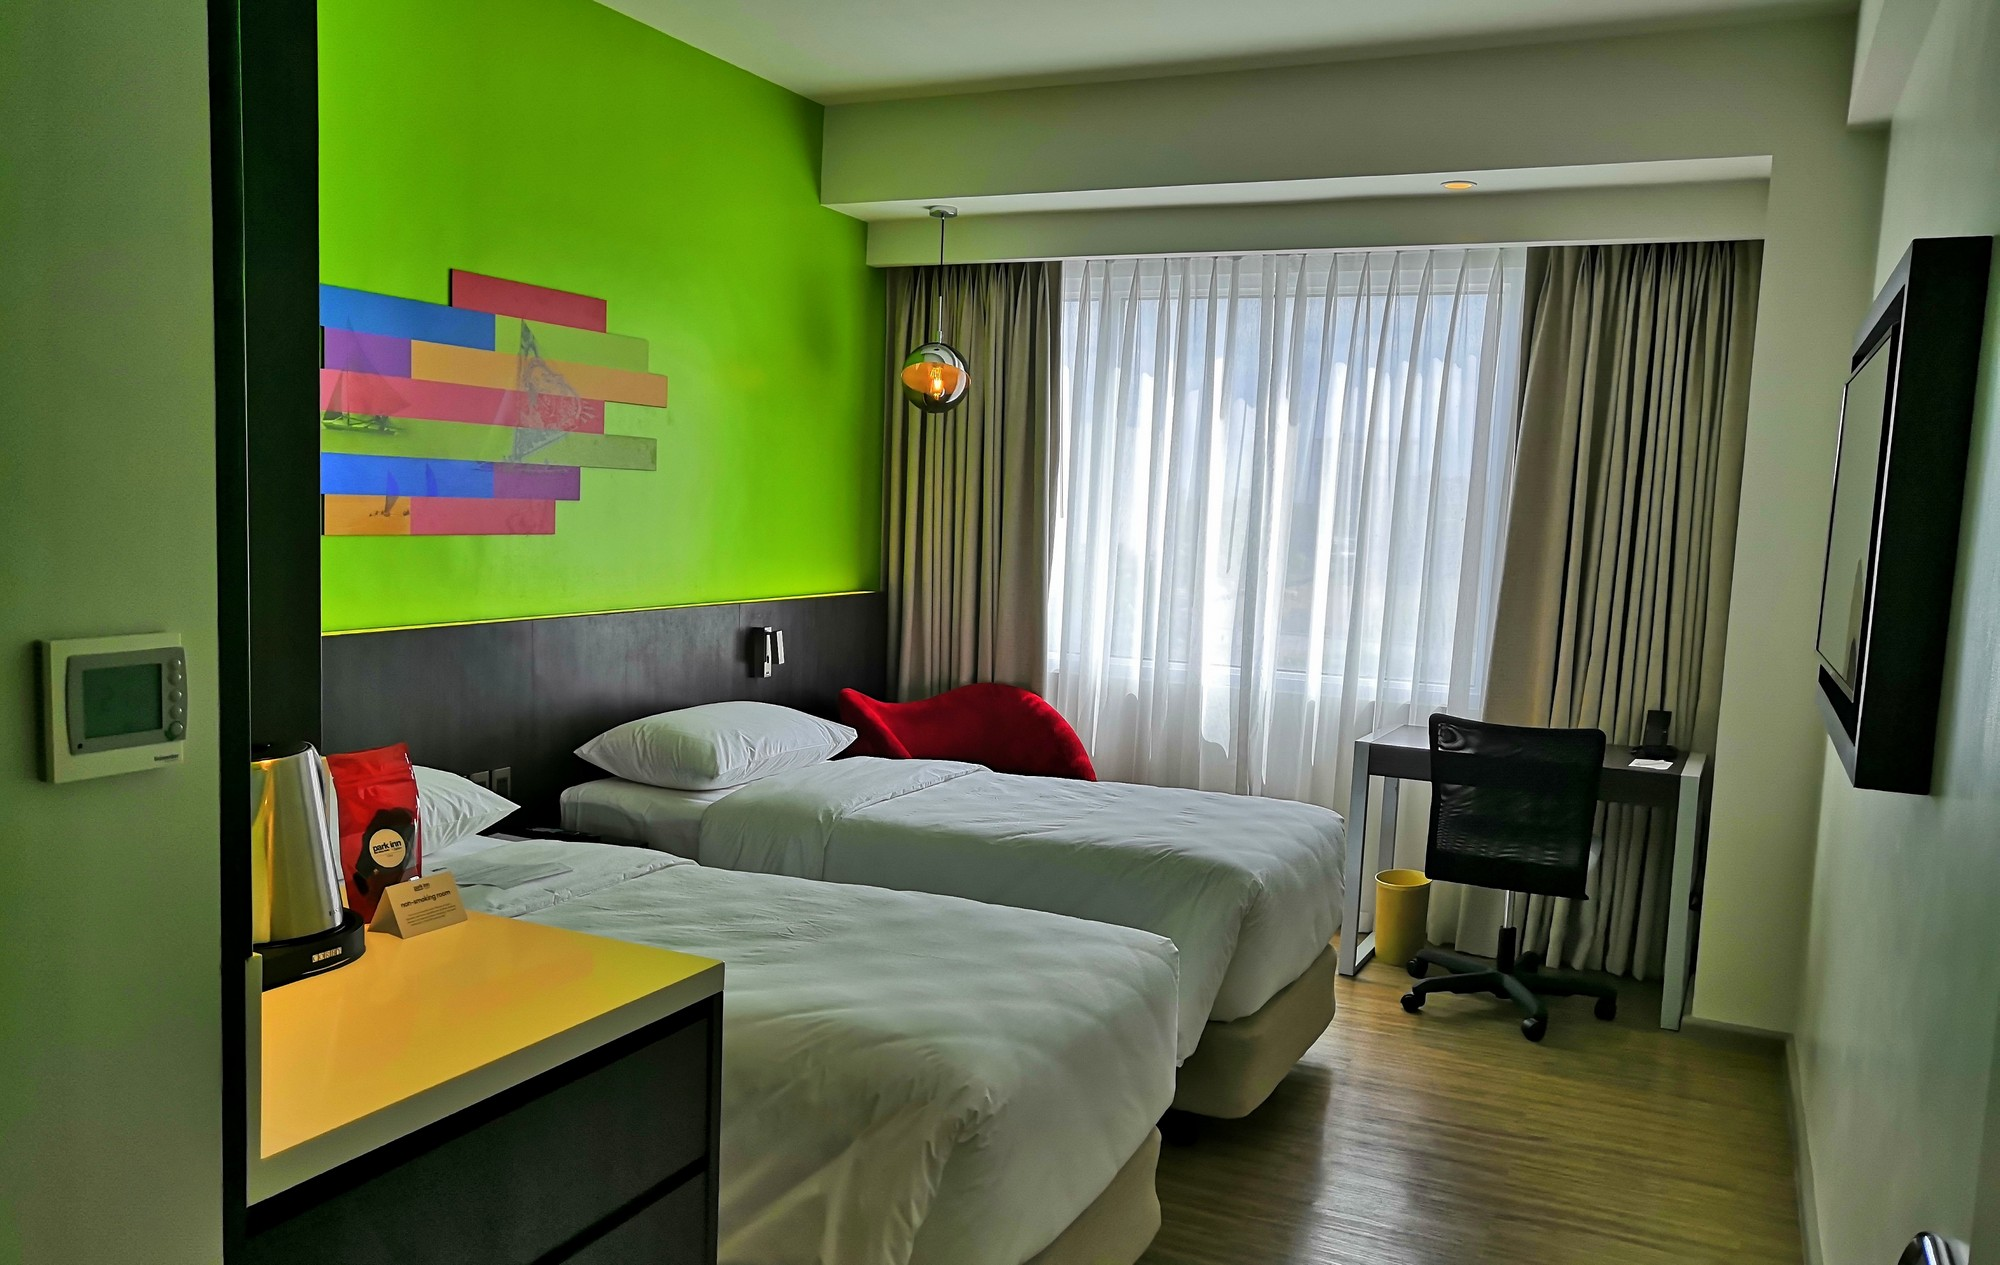 Park Inn by Radisson Iloilo rooms